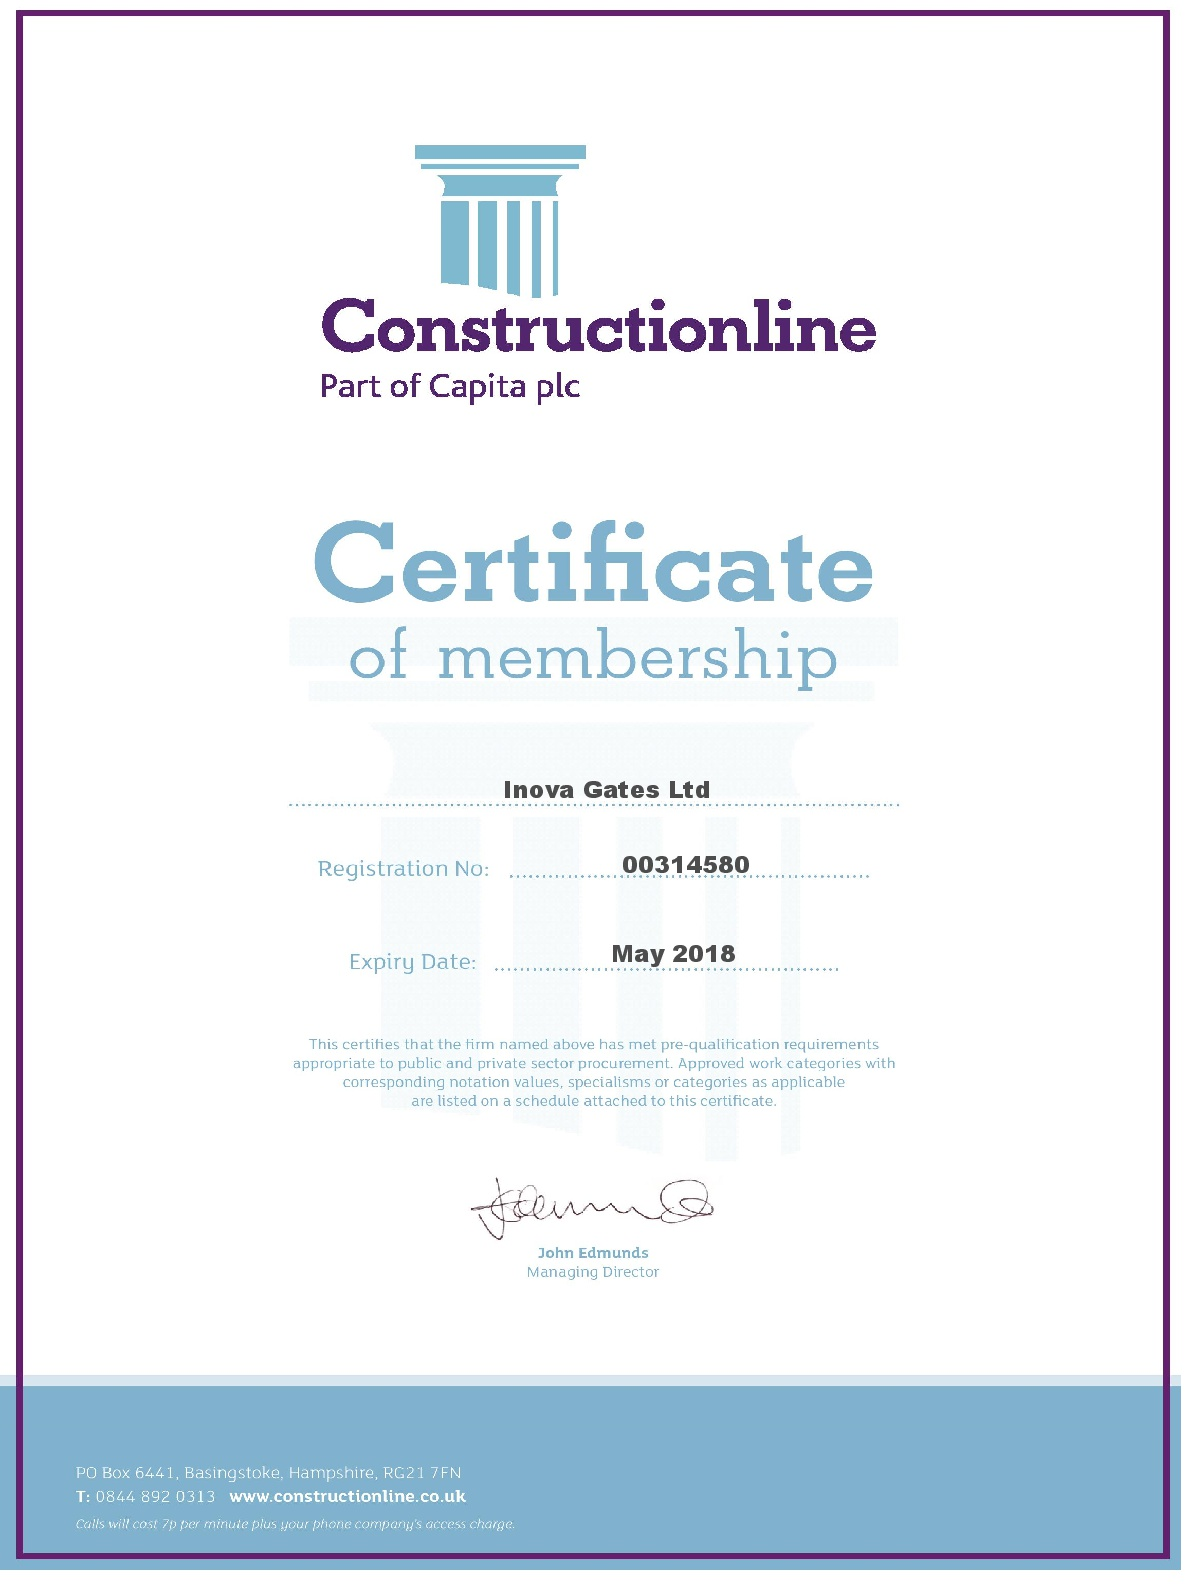 Constructionline Certificate Expires May 2018-001